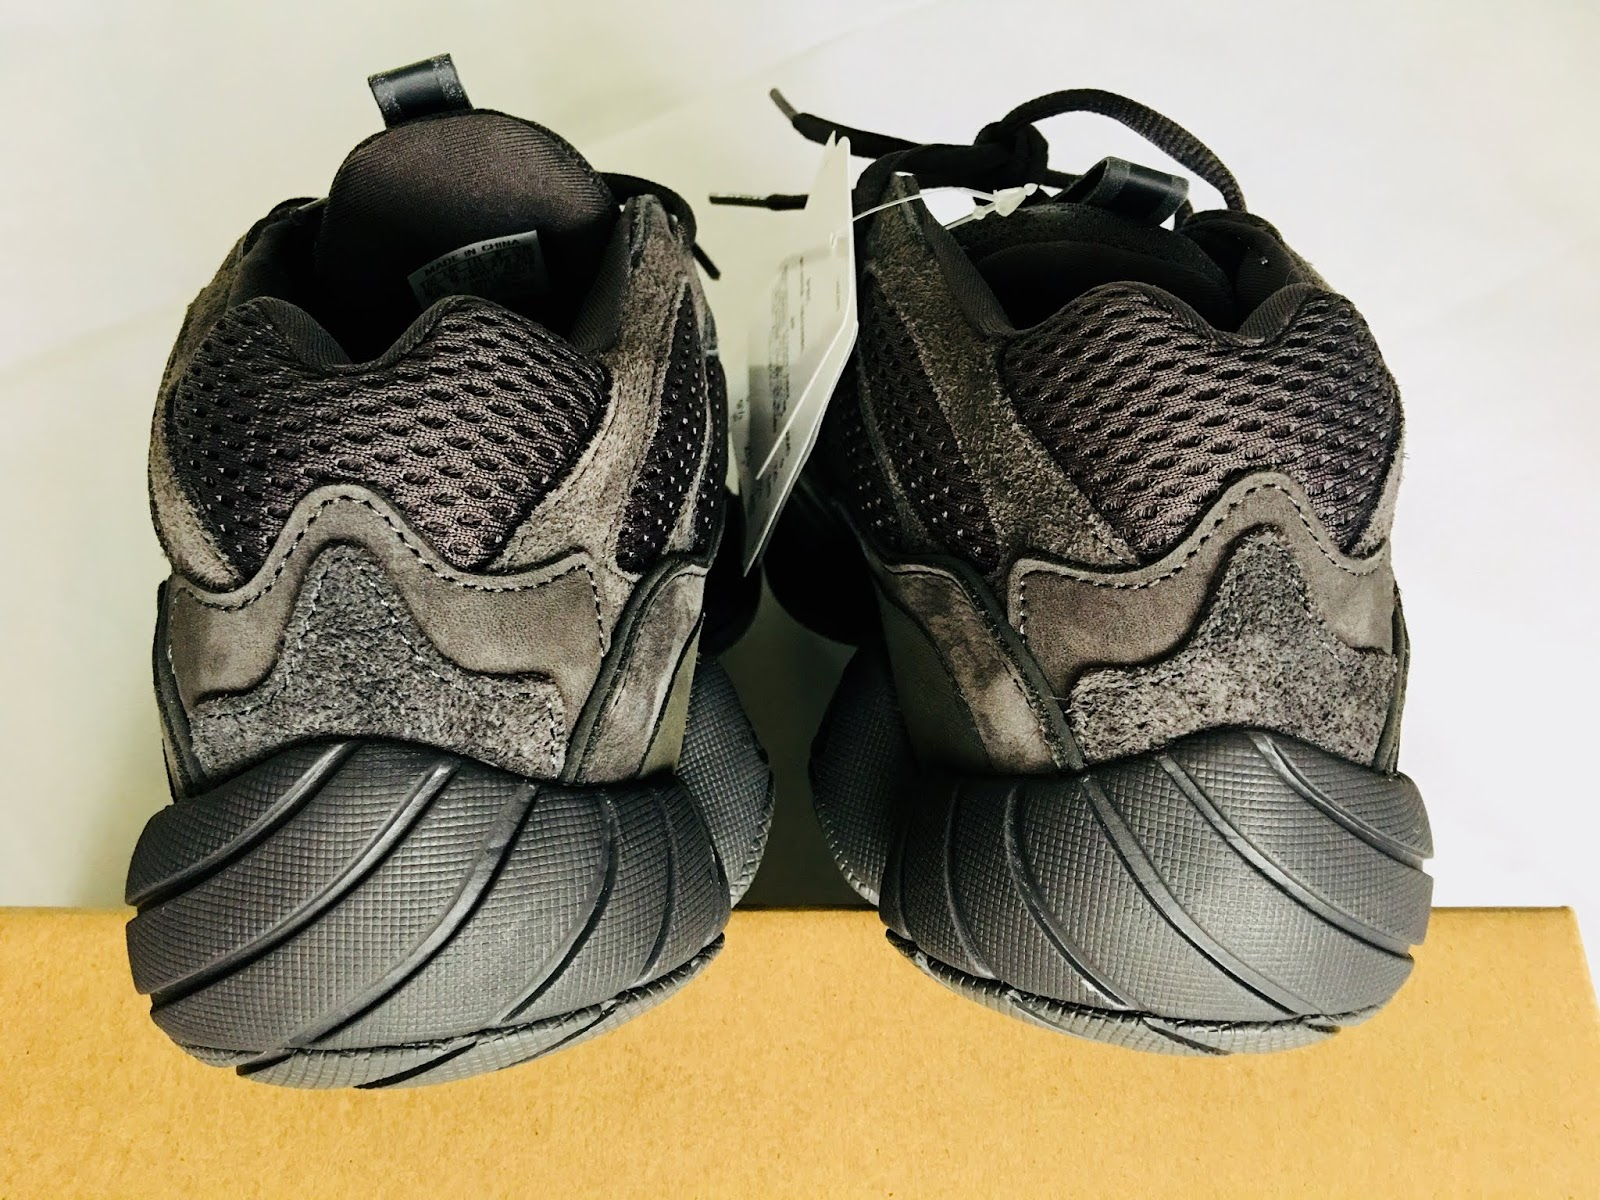 d3ae7796a35f3 Adidas Yeezy 500 Utility Black Sneakers